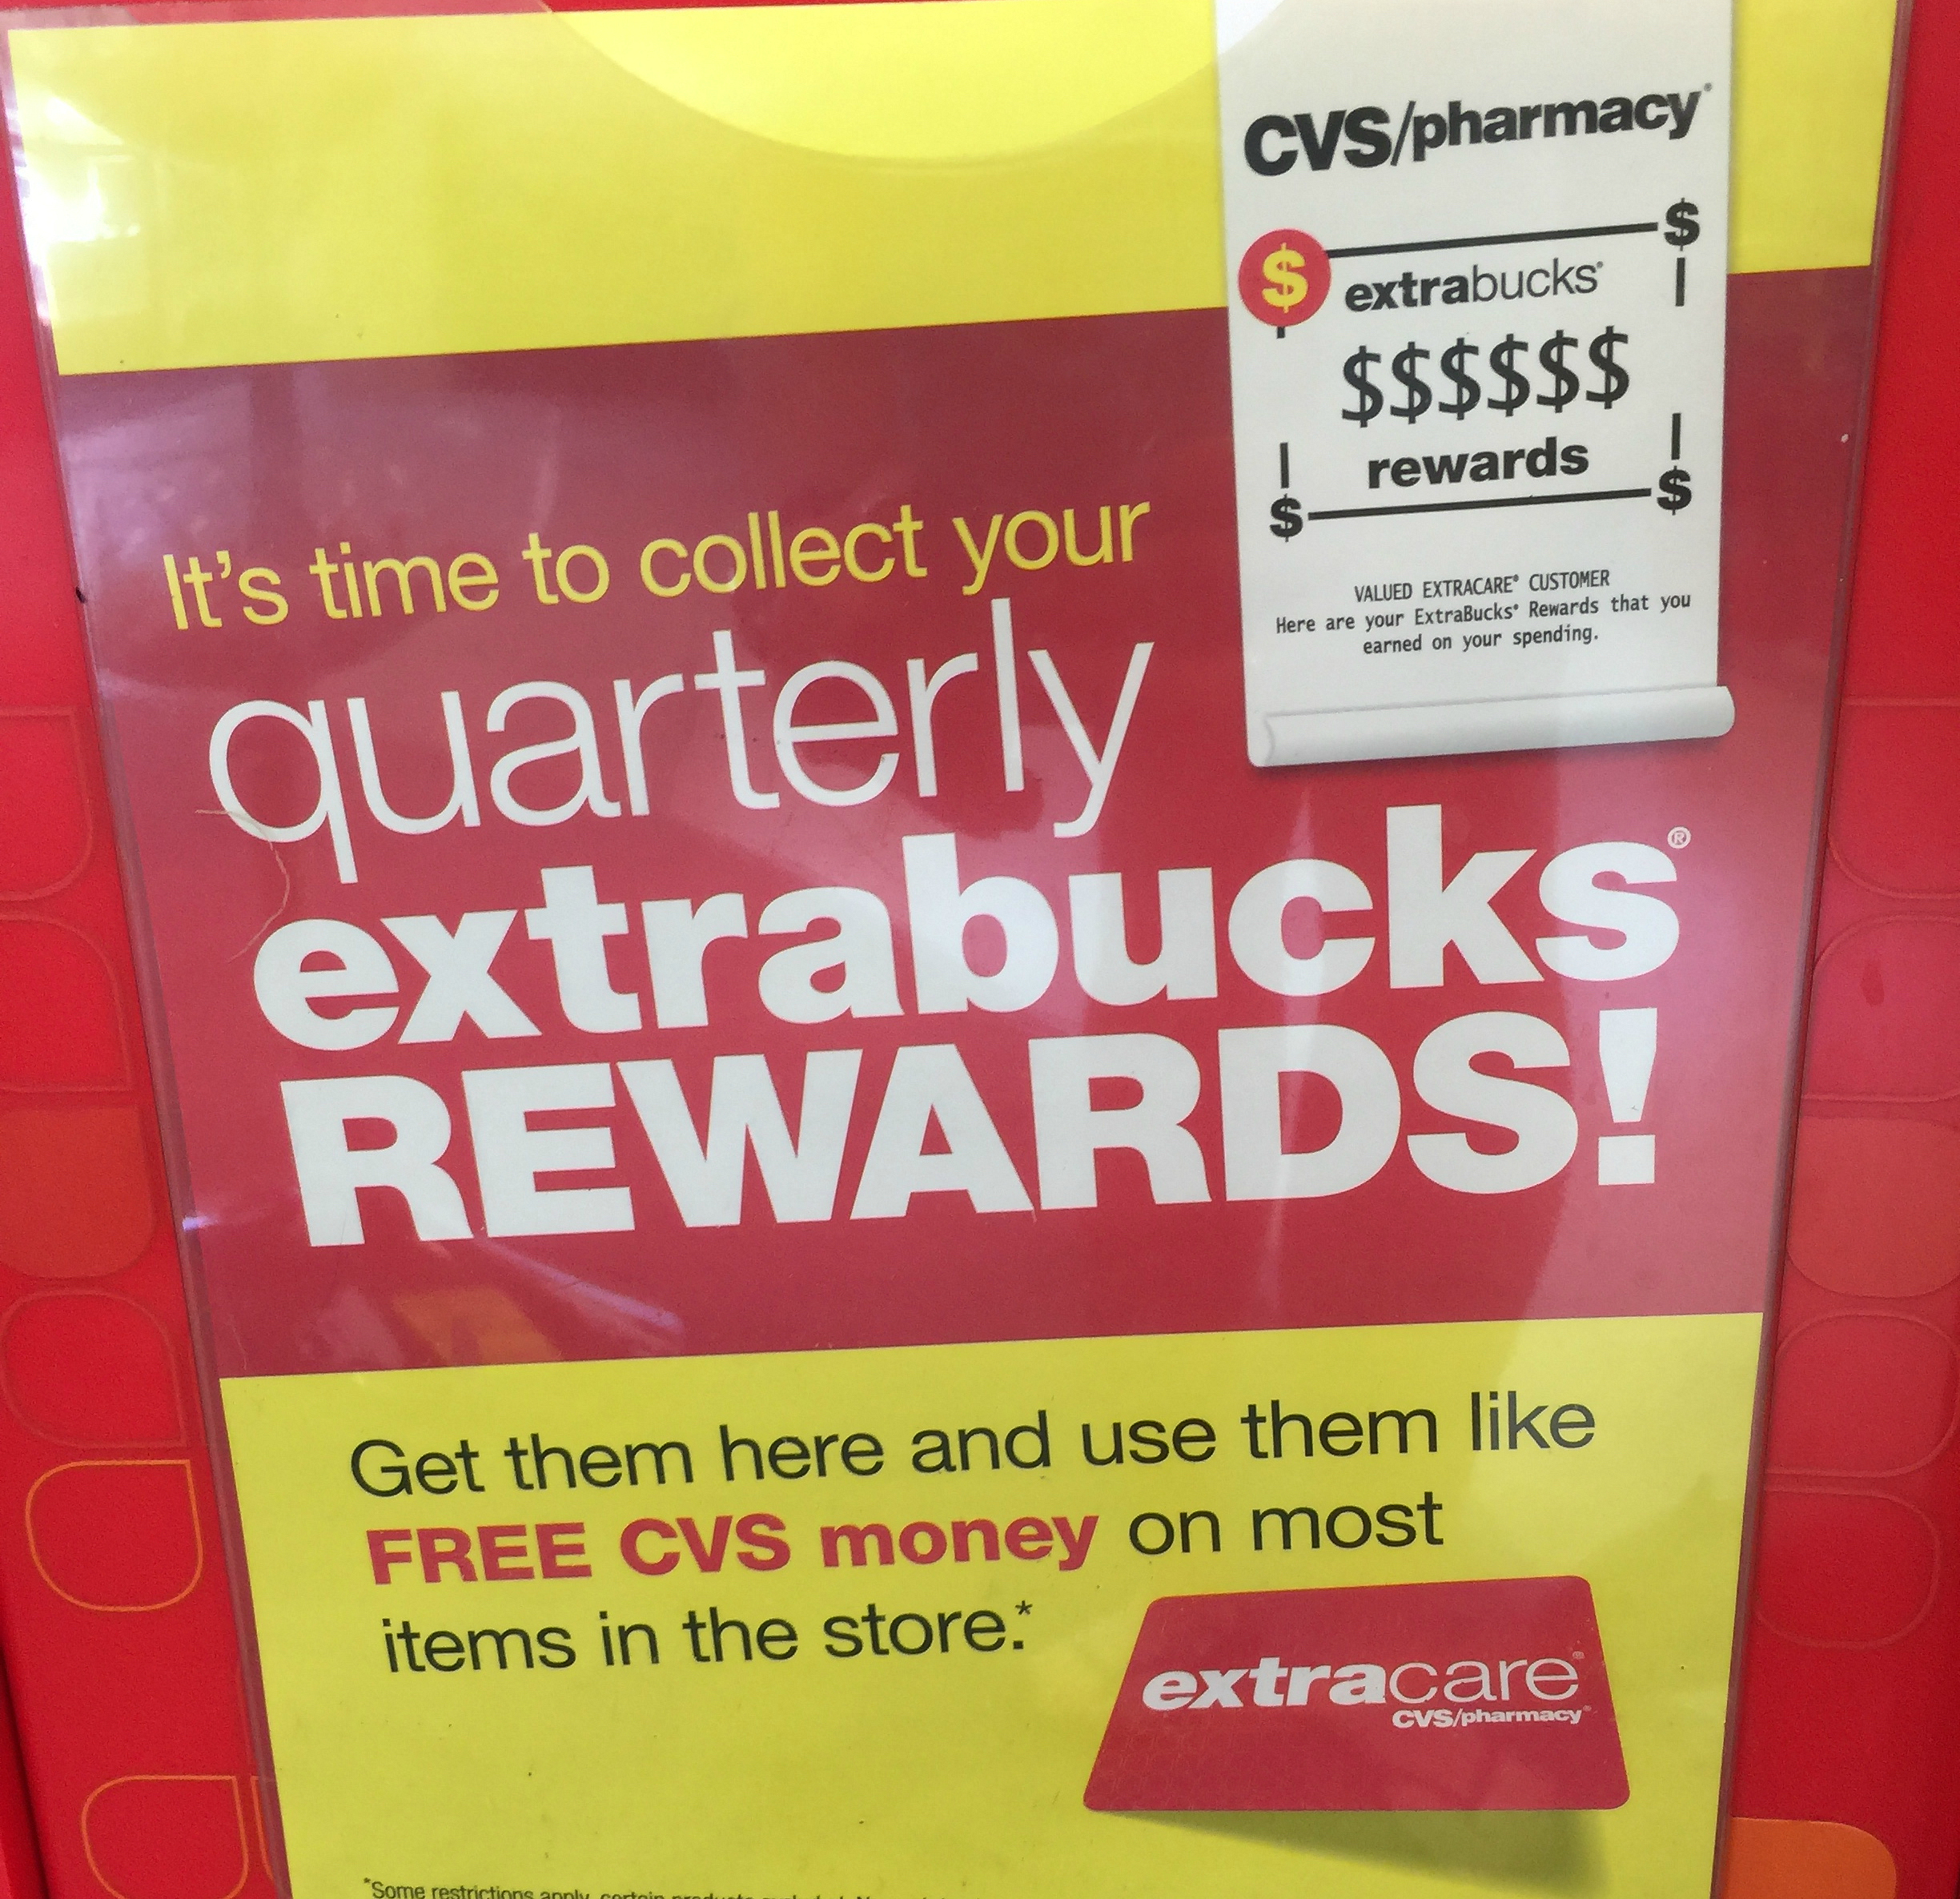 cvs store guide – extrabucks rewards sign